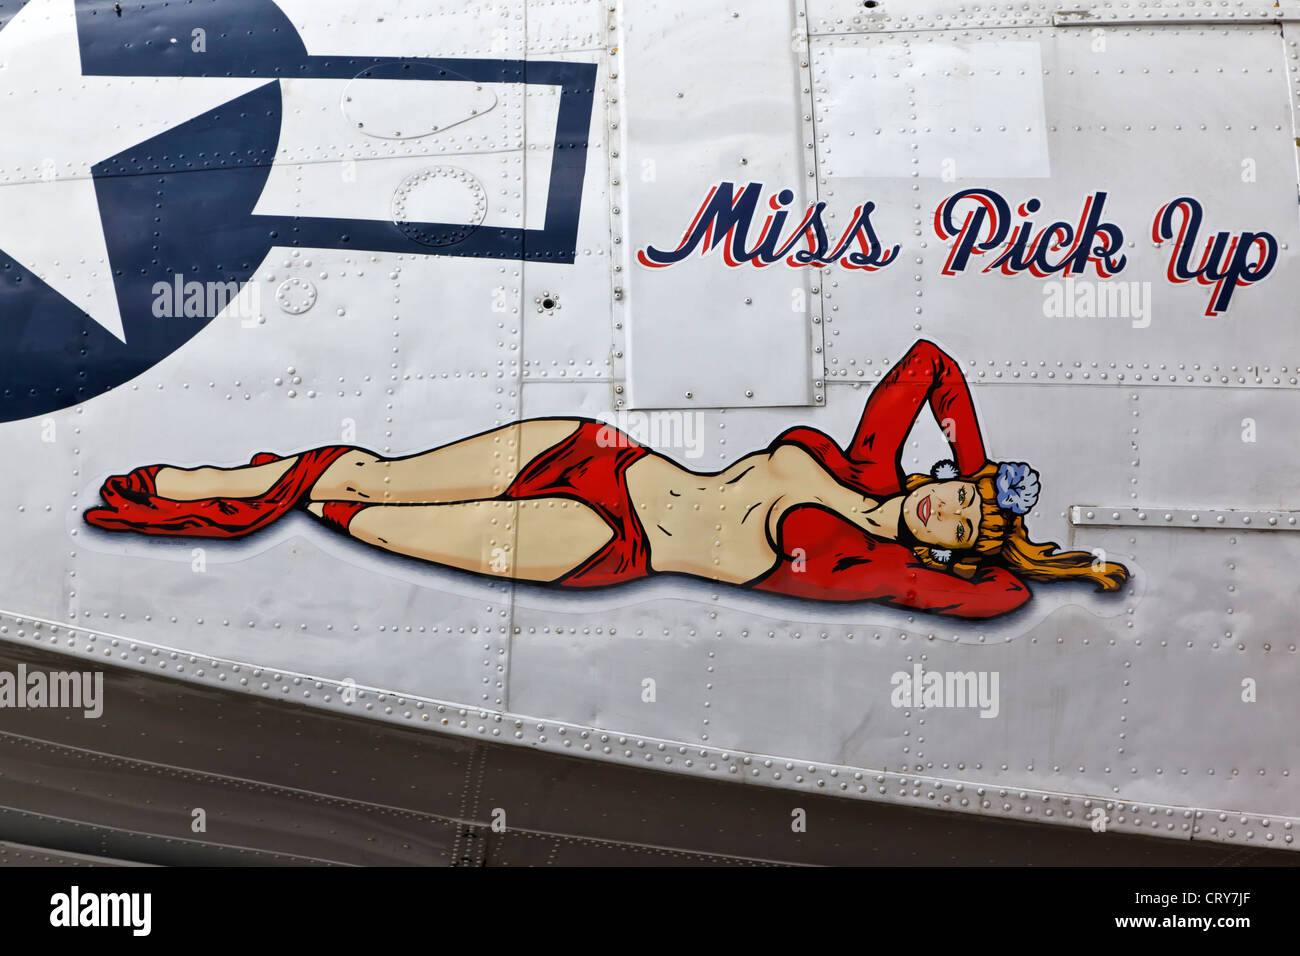 Miss Pick up Nose art on a PBY Catalina - Stock Image